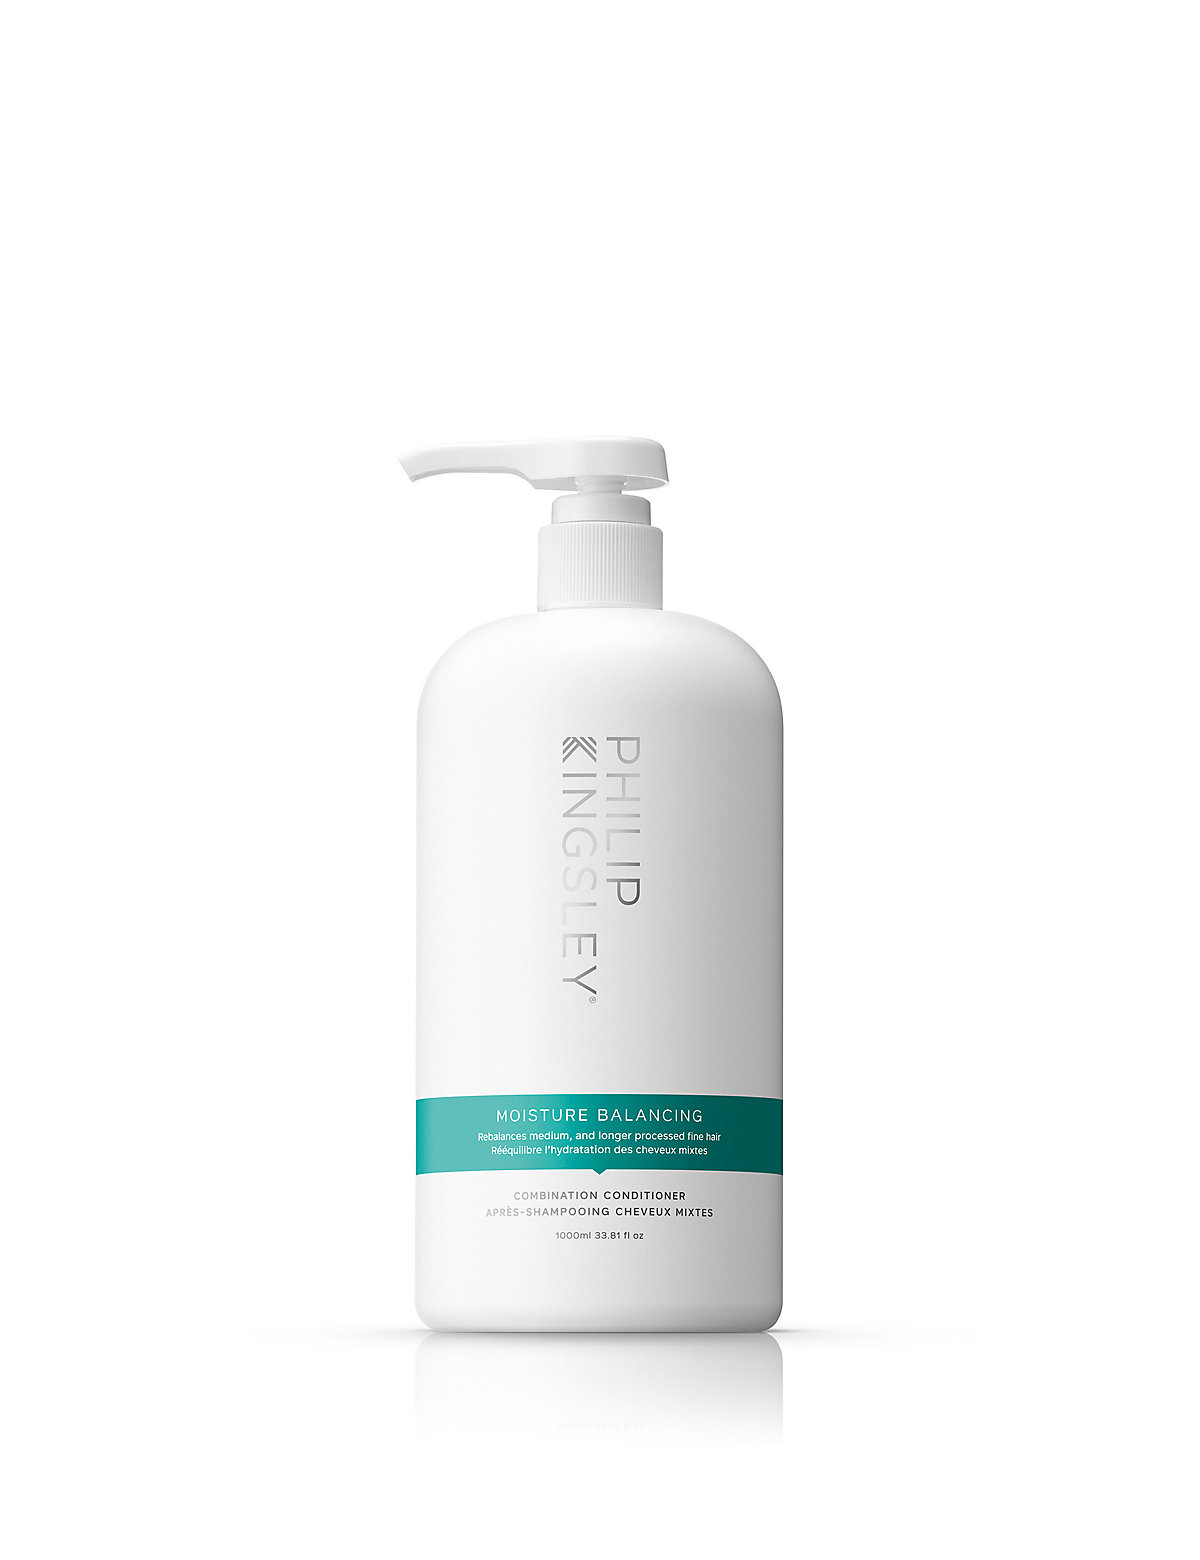 Philip Kingsley 1 Litre Moisture Balancing Conditioner - *Save 40% per ml